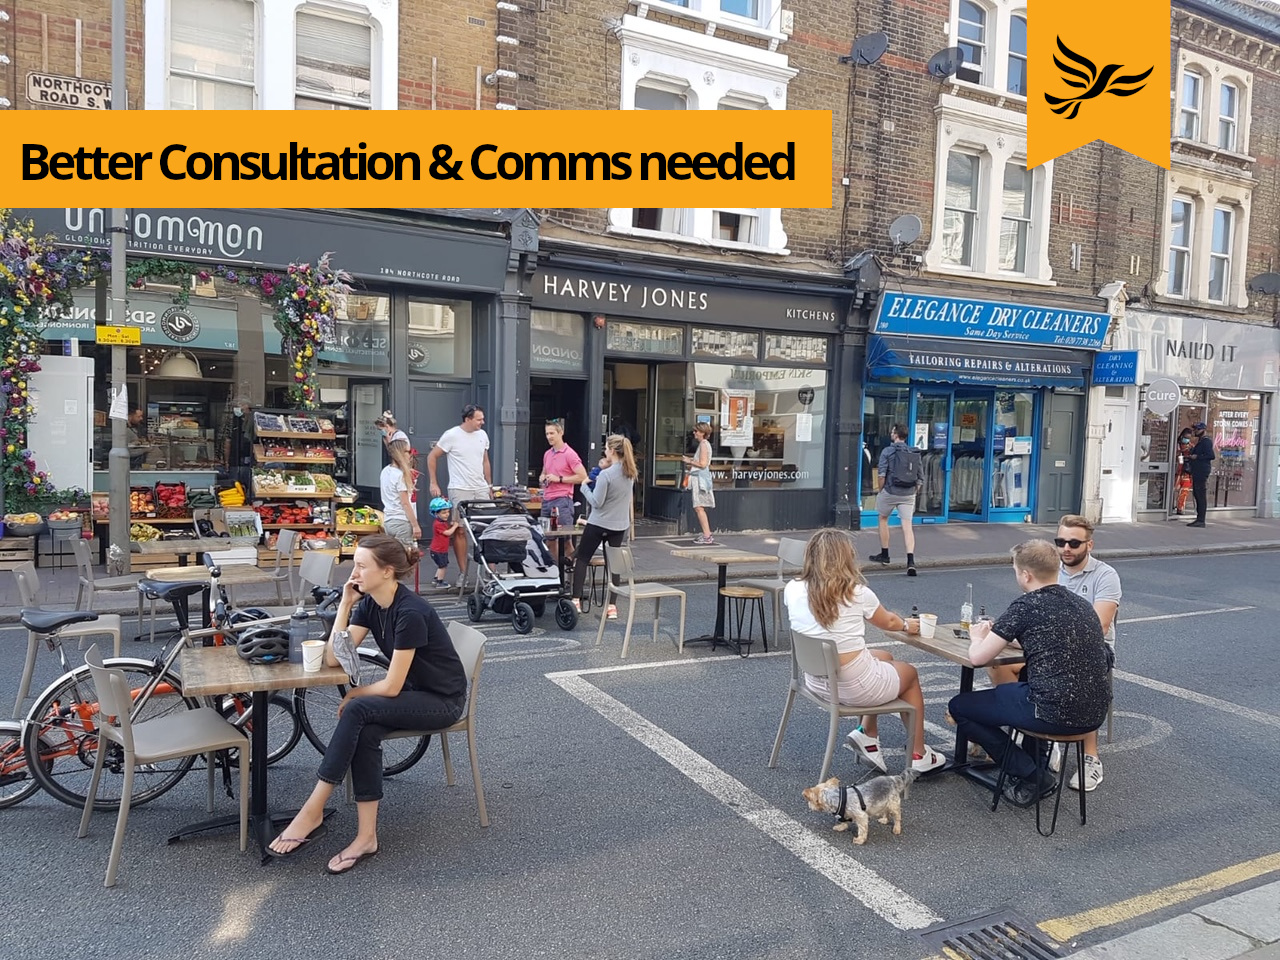 Traffic Schemes: Thorough Consultation, Better Communication Needed - Battersea Lib Dems